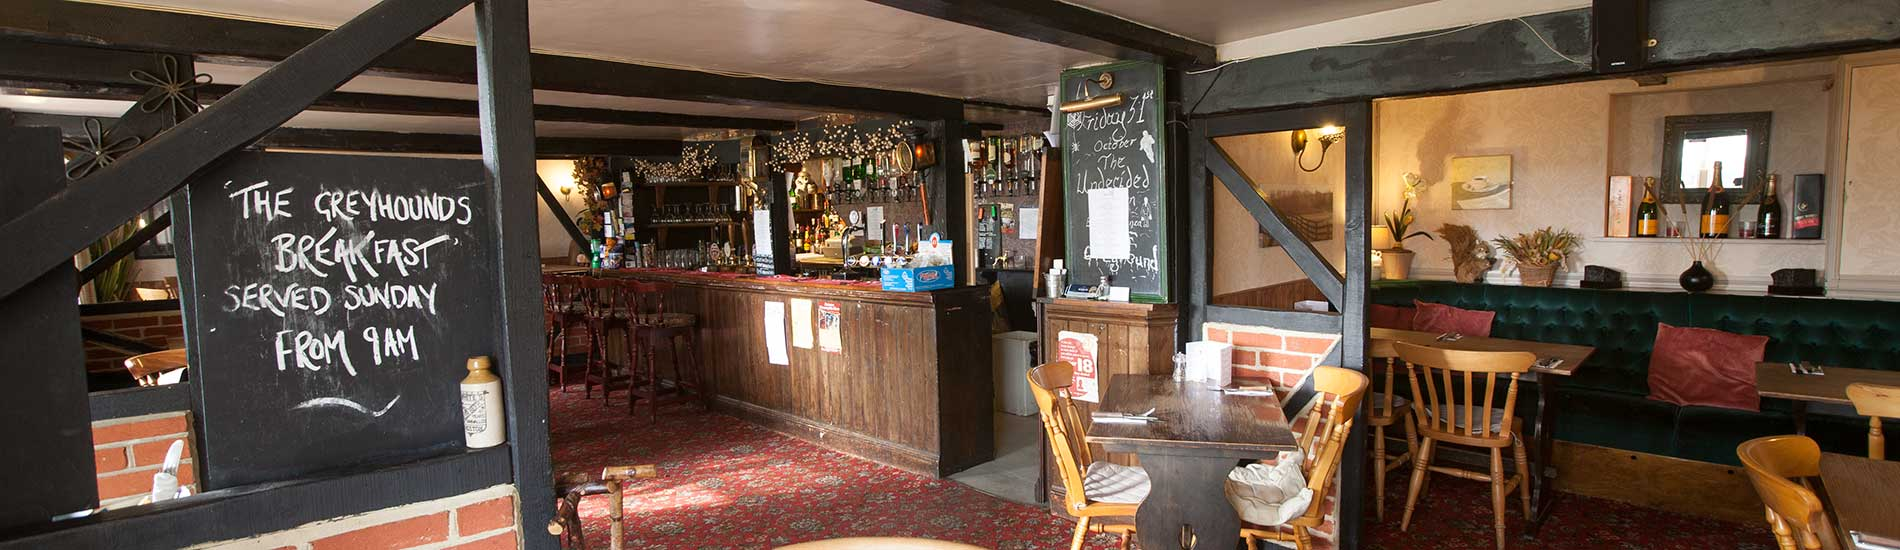 How to contact the Greyhound, Midhurst, West Sussex